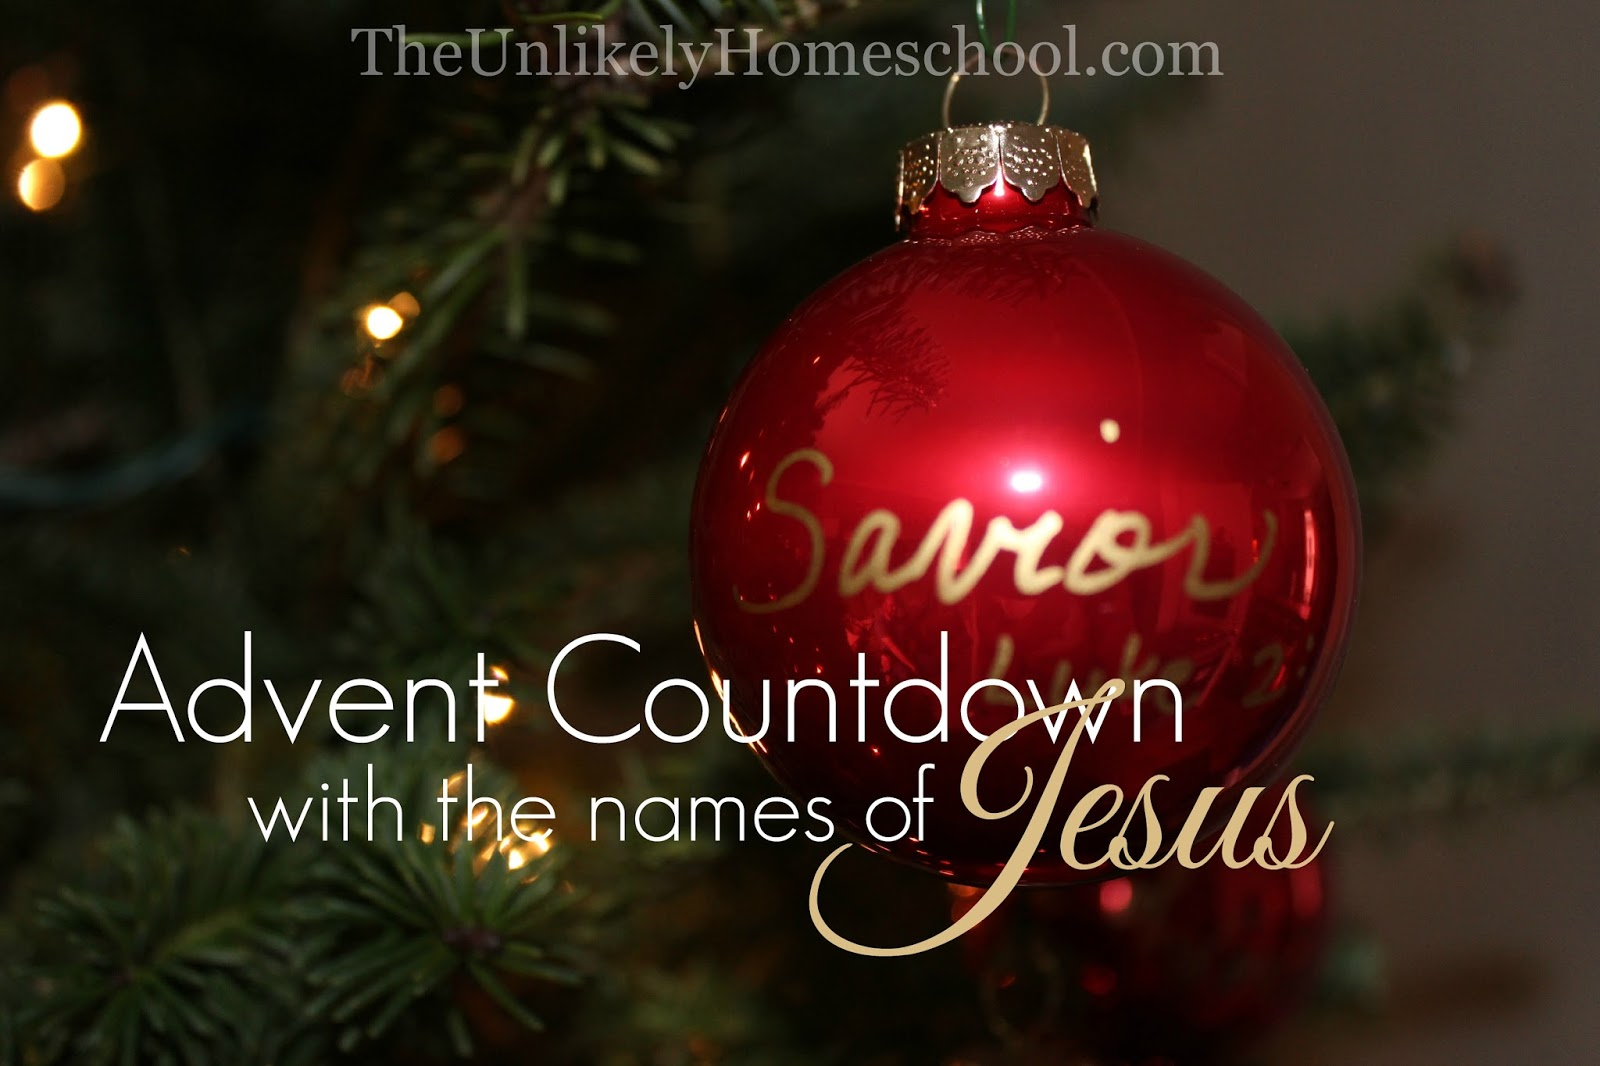 The Unlikely Homeschool: Advent Countdown with the names of Jesus